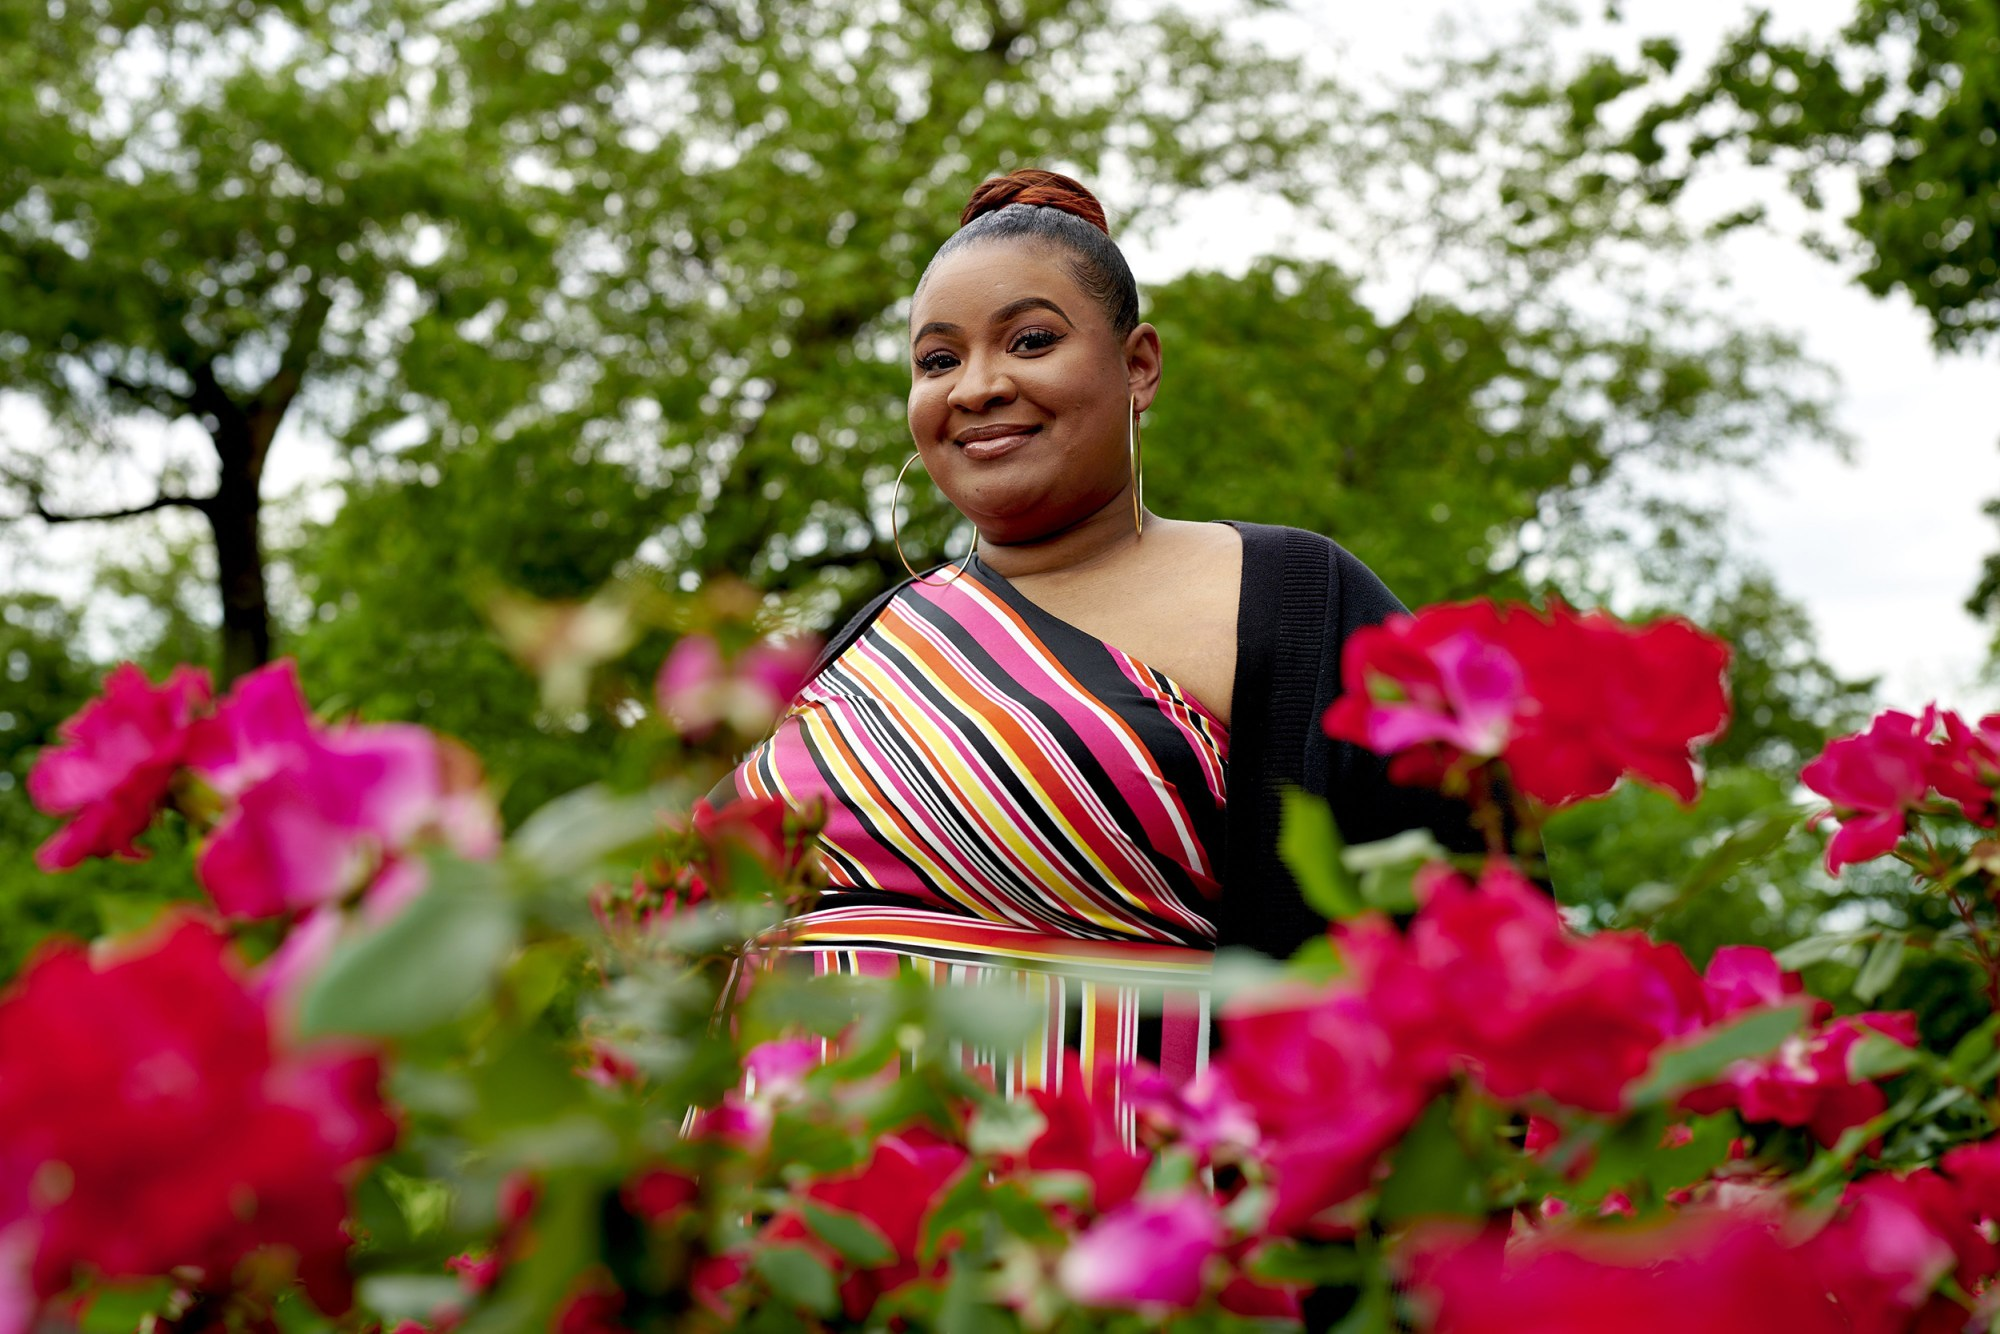 New Jersey's 'Black Fairy Godmother' Simone Gordon Provides Coronavirus Relief to Minority Communities One DM at a Time